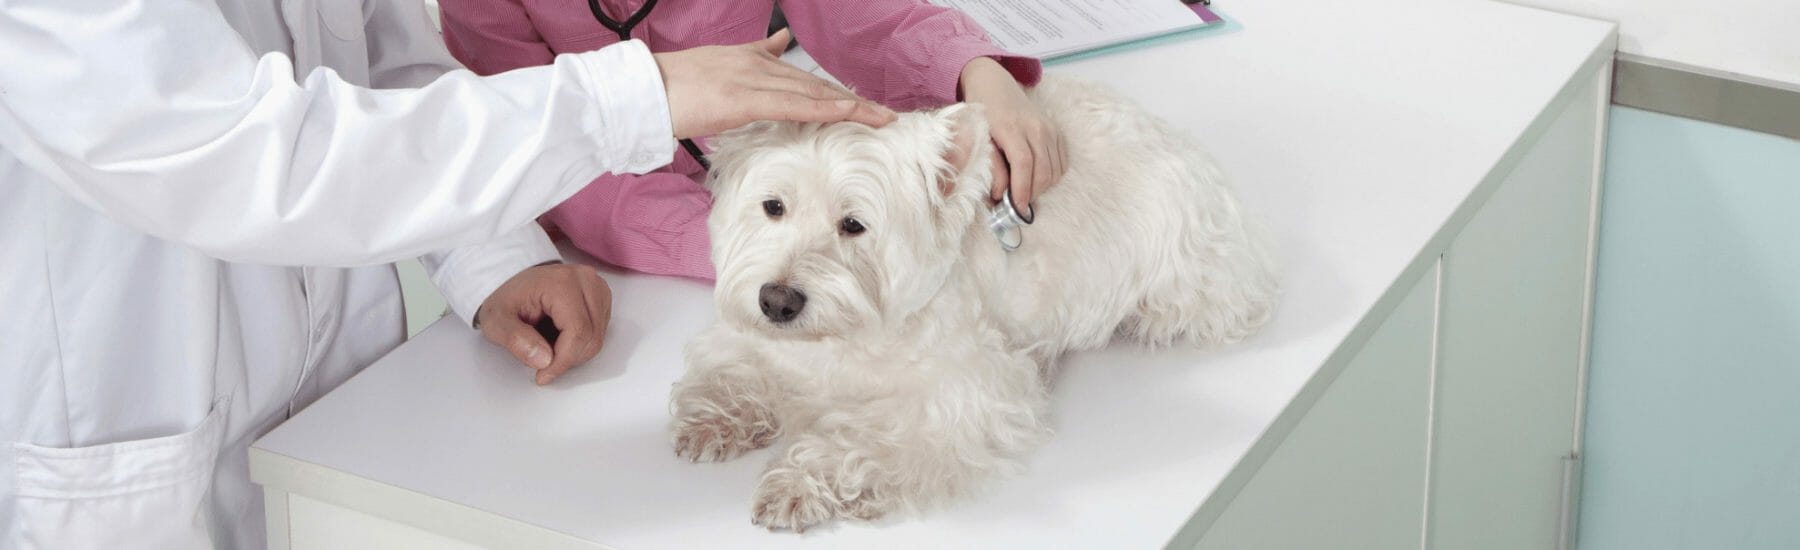 White dog getting examined by veterinarian